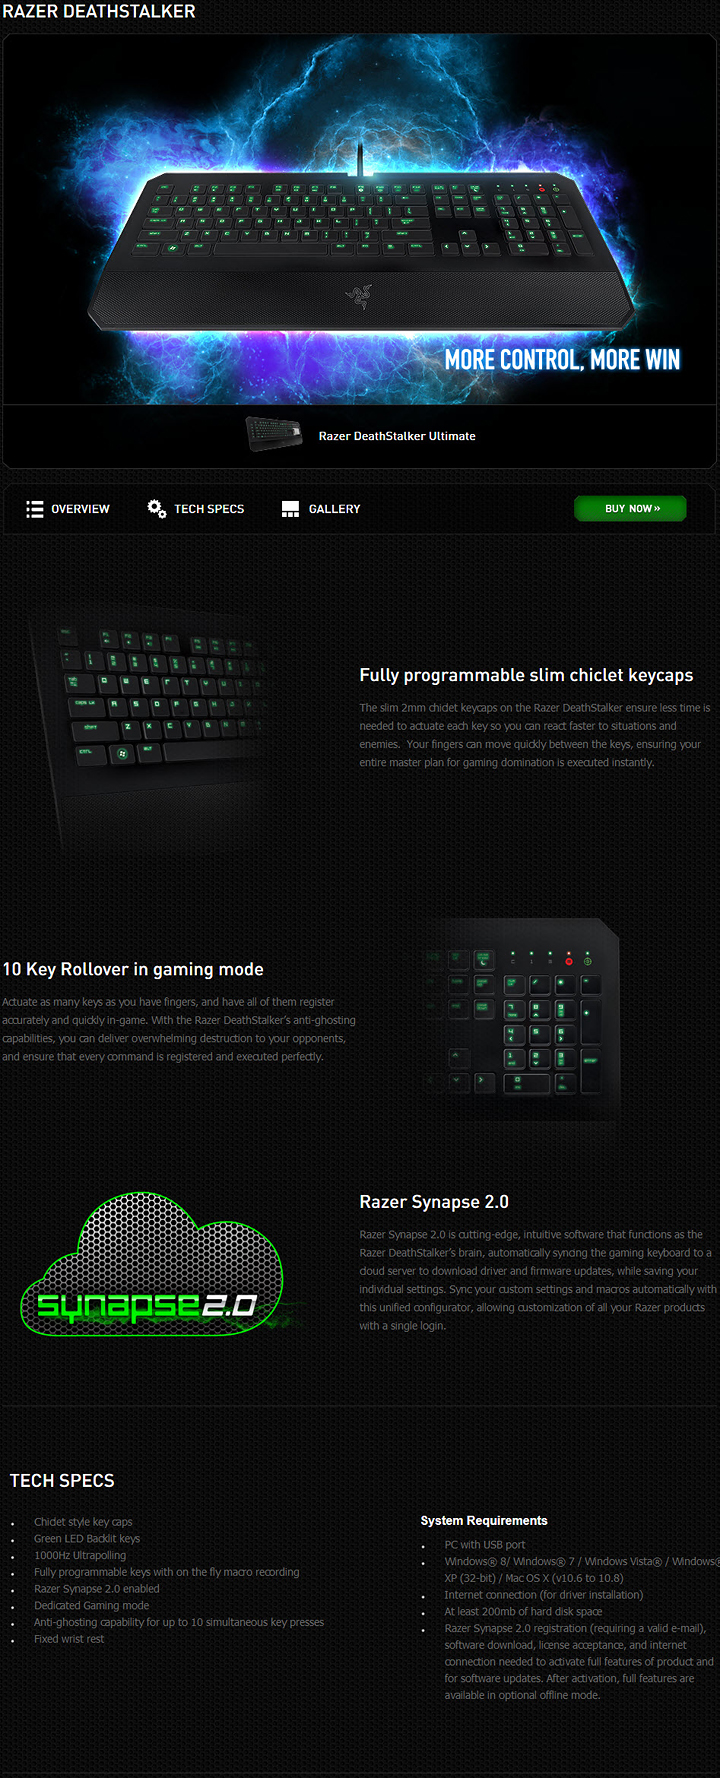 3 20 2013 11 34 30 am RAZER DEATHSTALKER Expert Gaming Keyboard Review